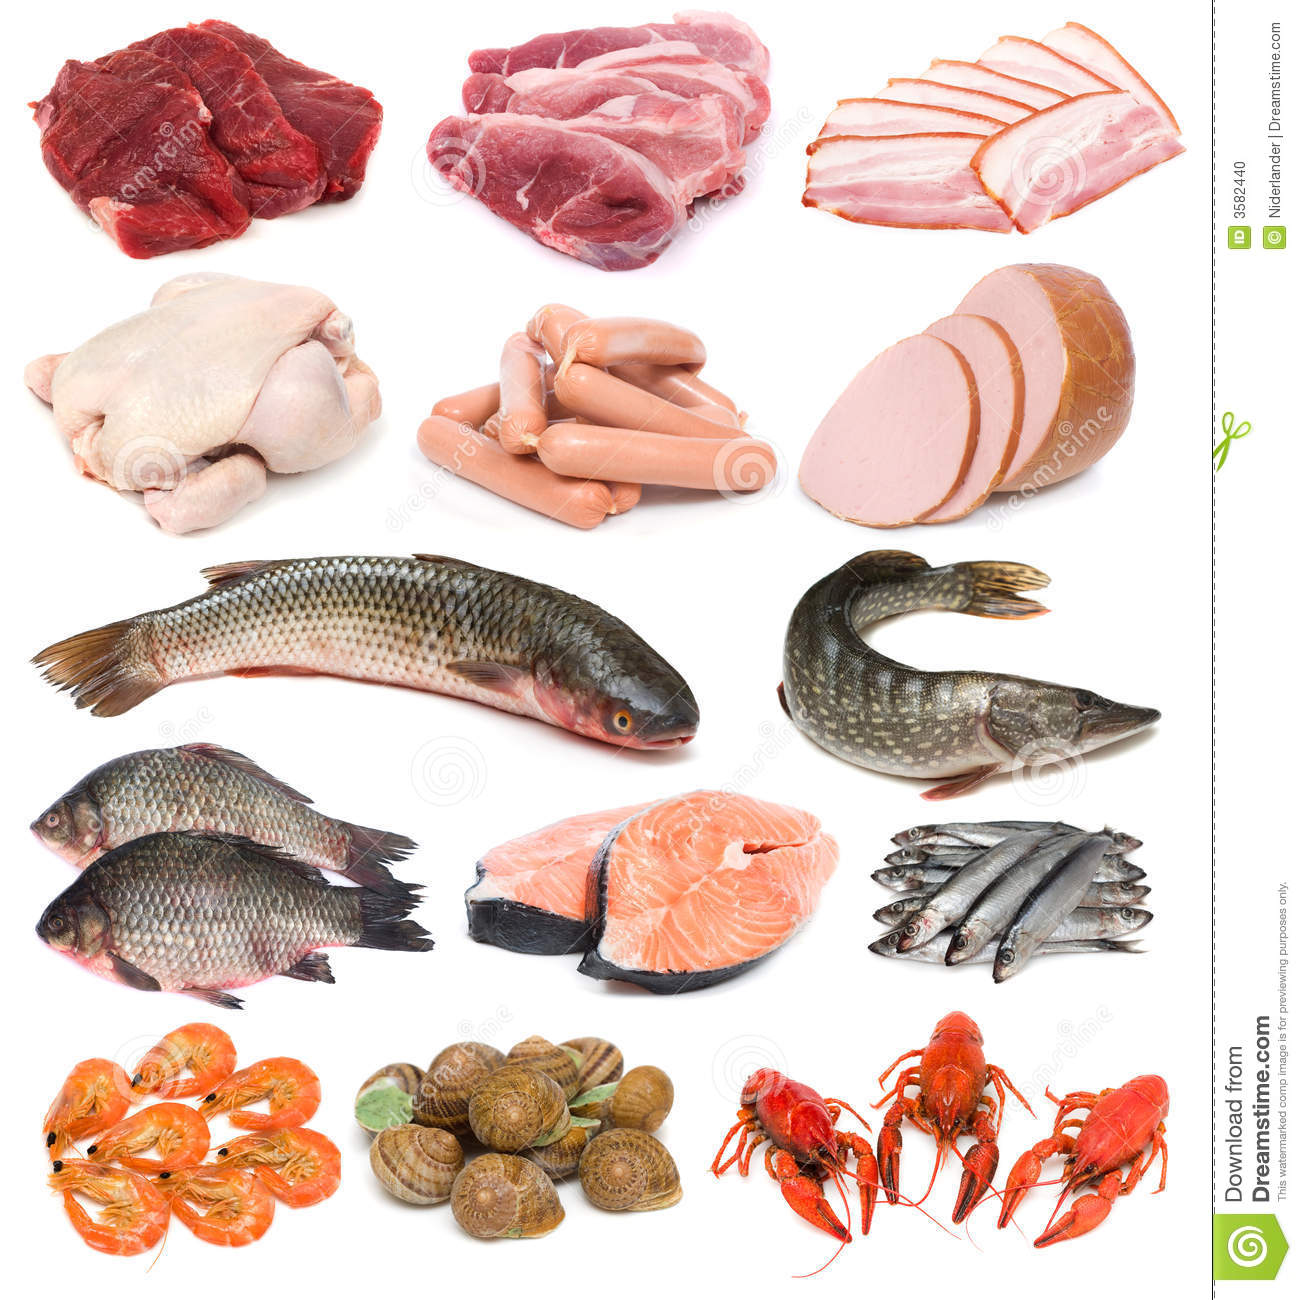 Meat fish and seafood stock photo image 3582440 for Is fish meat